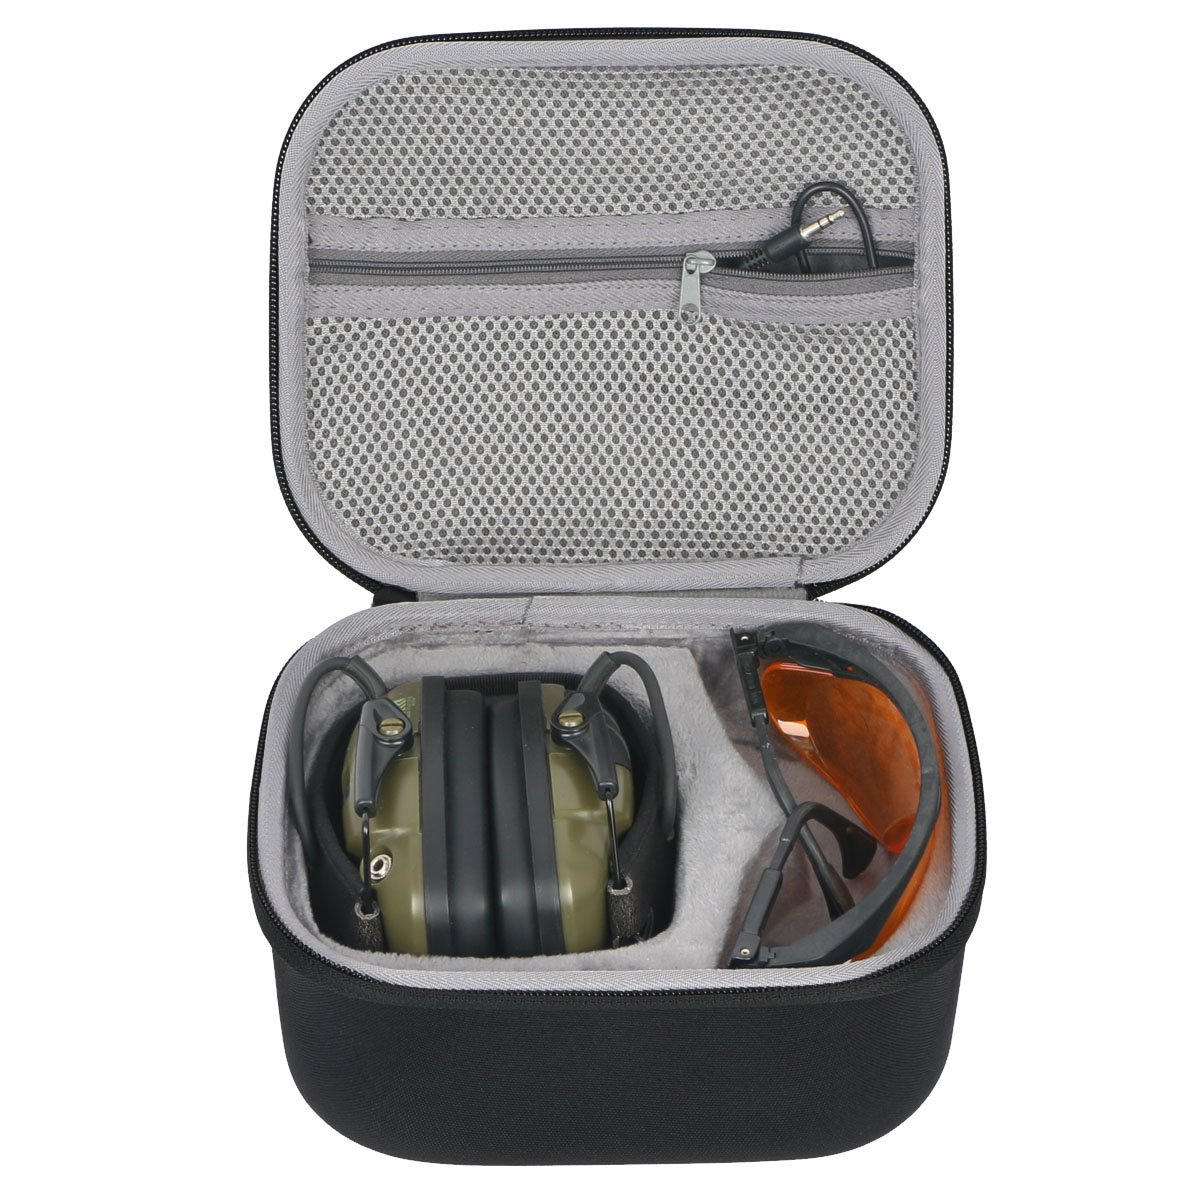 co2crea Hard Travel Case for Howard Leight Impact Sport OD Electric Earmuff and Genesis Sharp-Shooter Safety Eyewear Glasses by Co2Crea